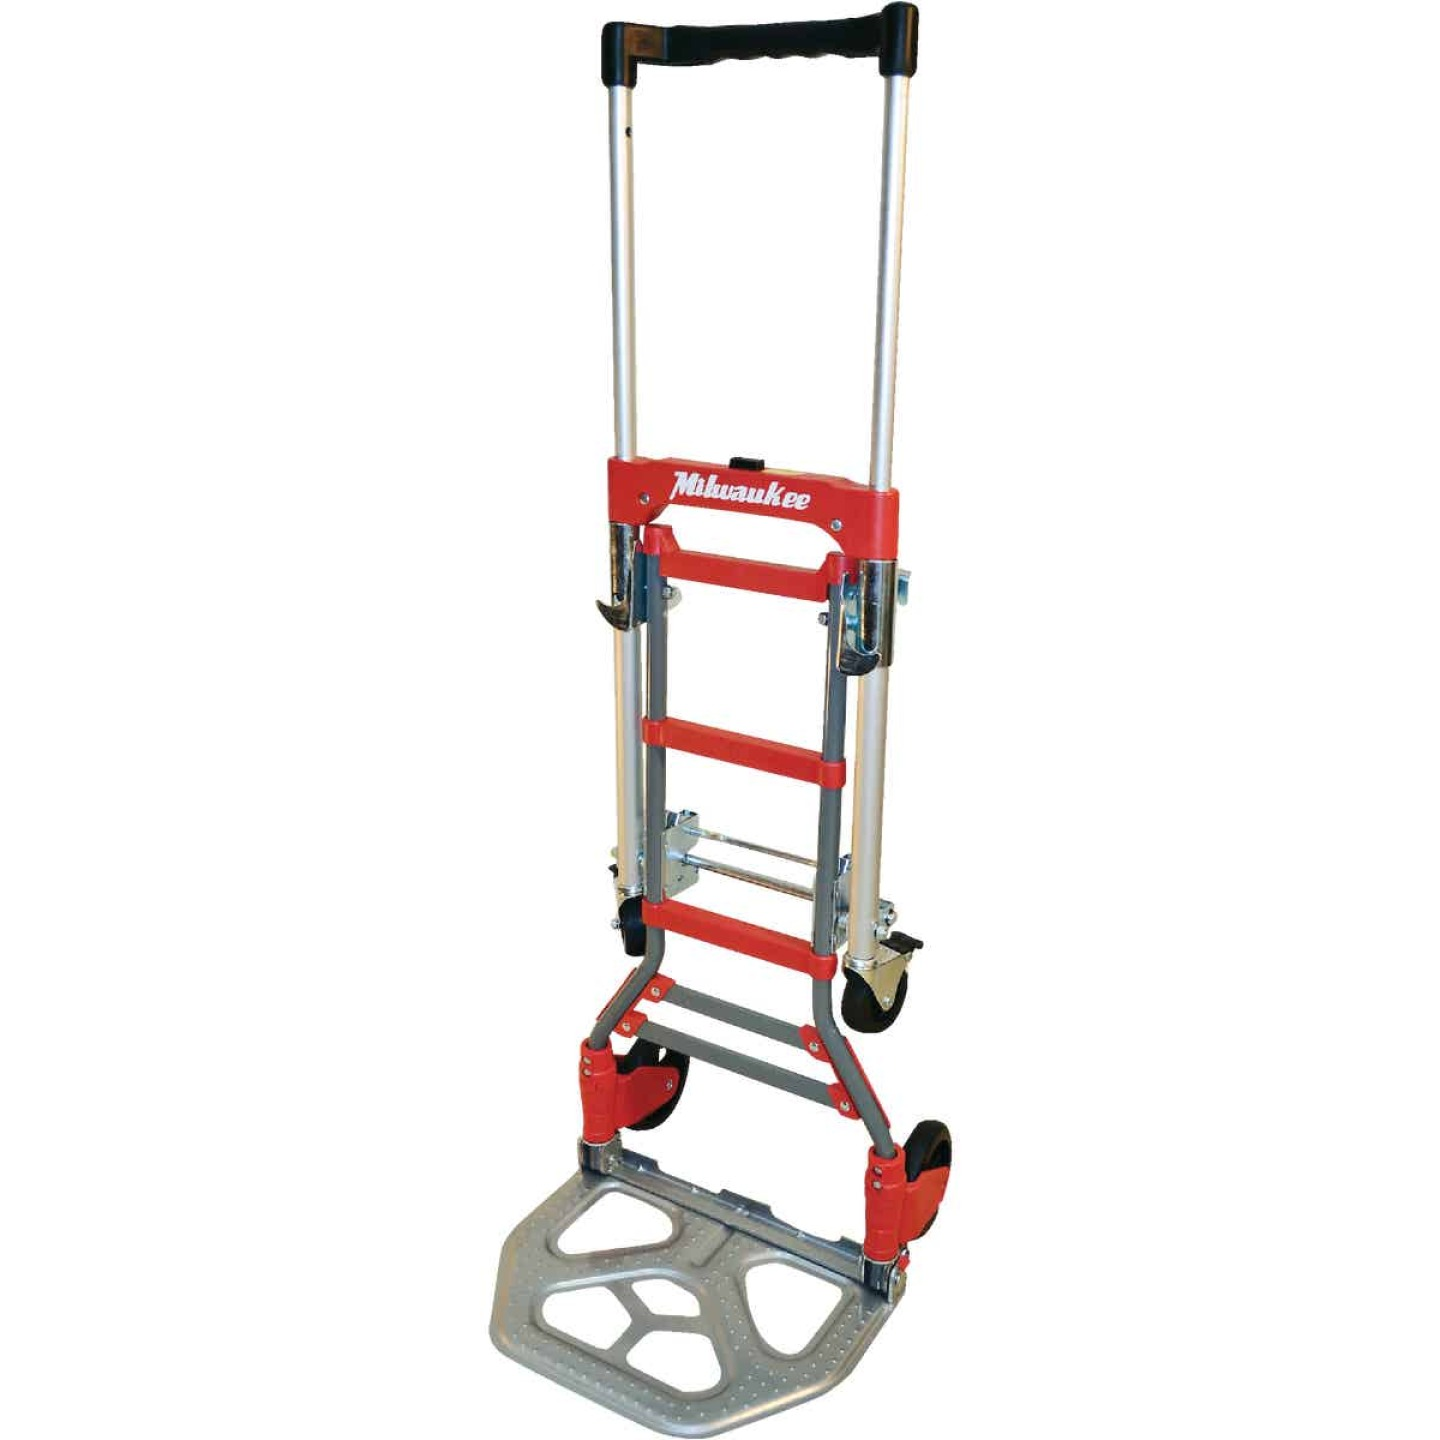 Milwaukee 300 Lb. Capacity 2-In-1 Hand Truck Image 3